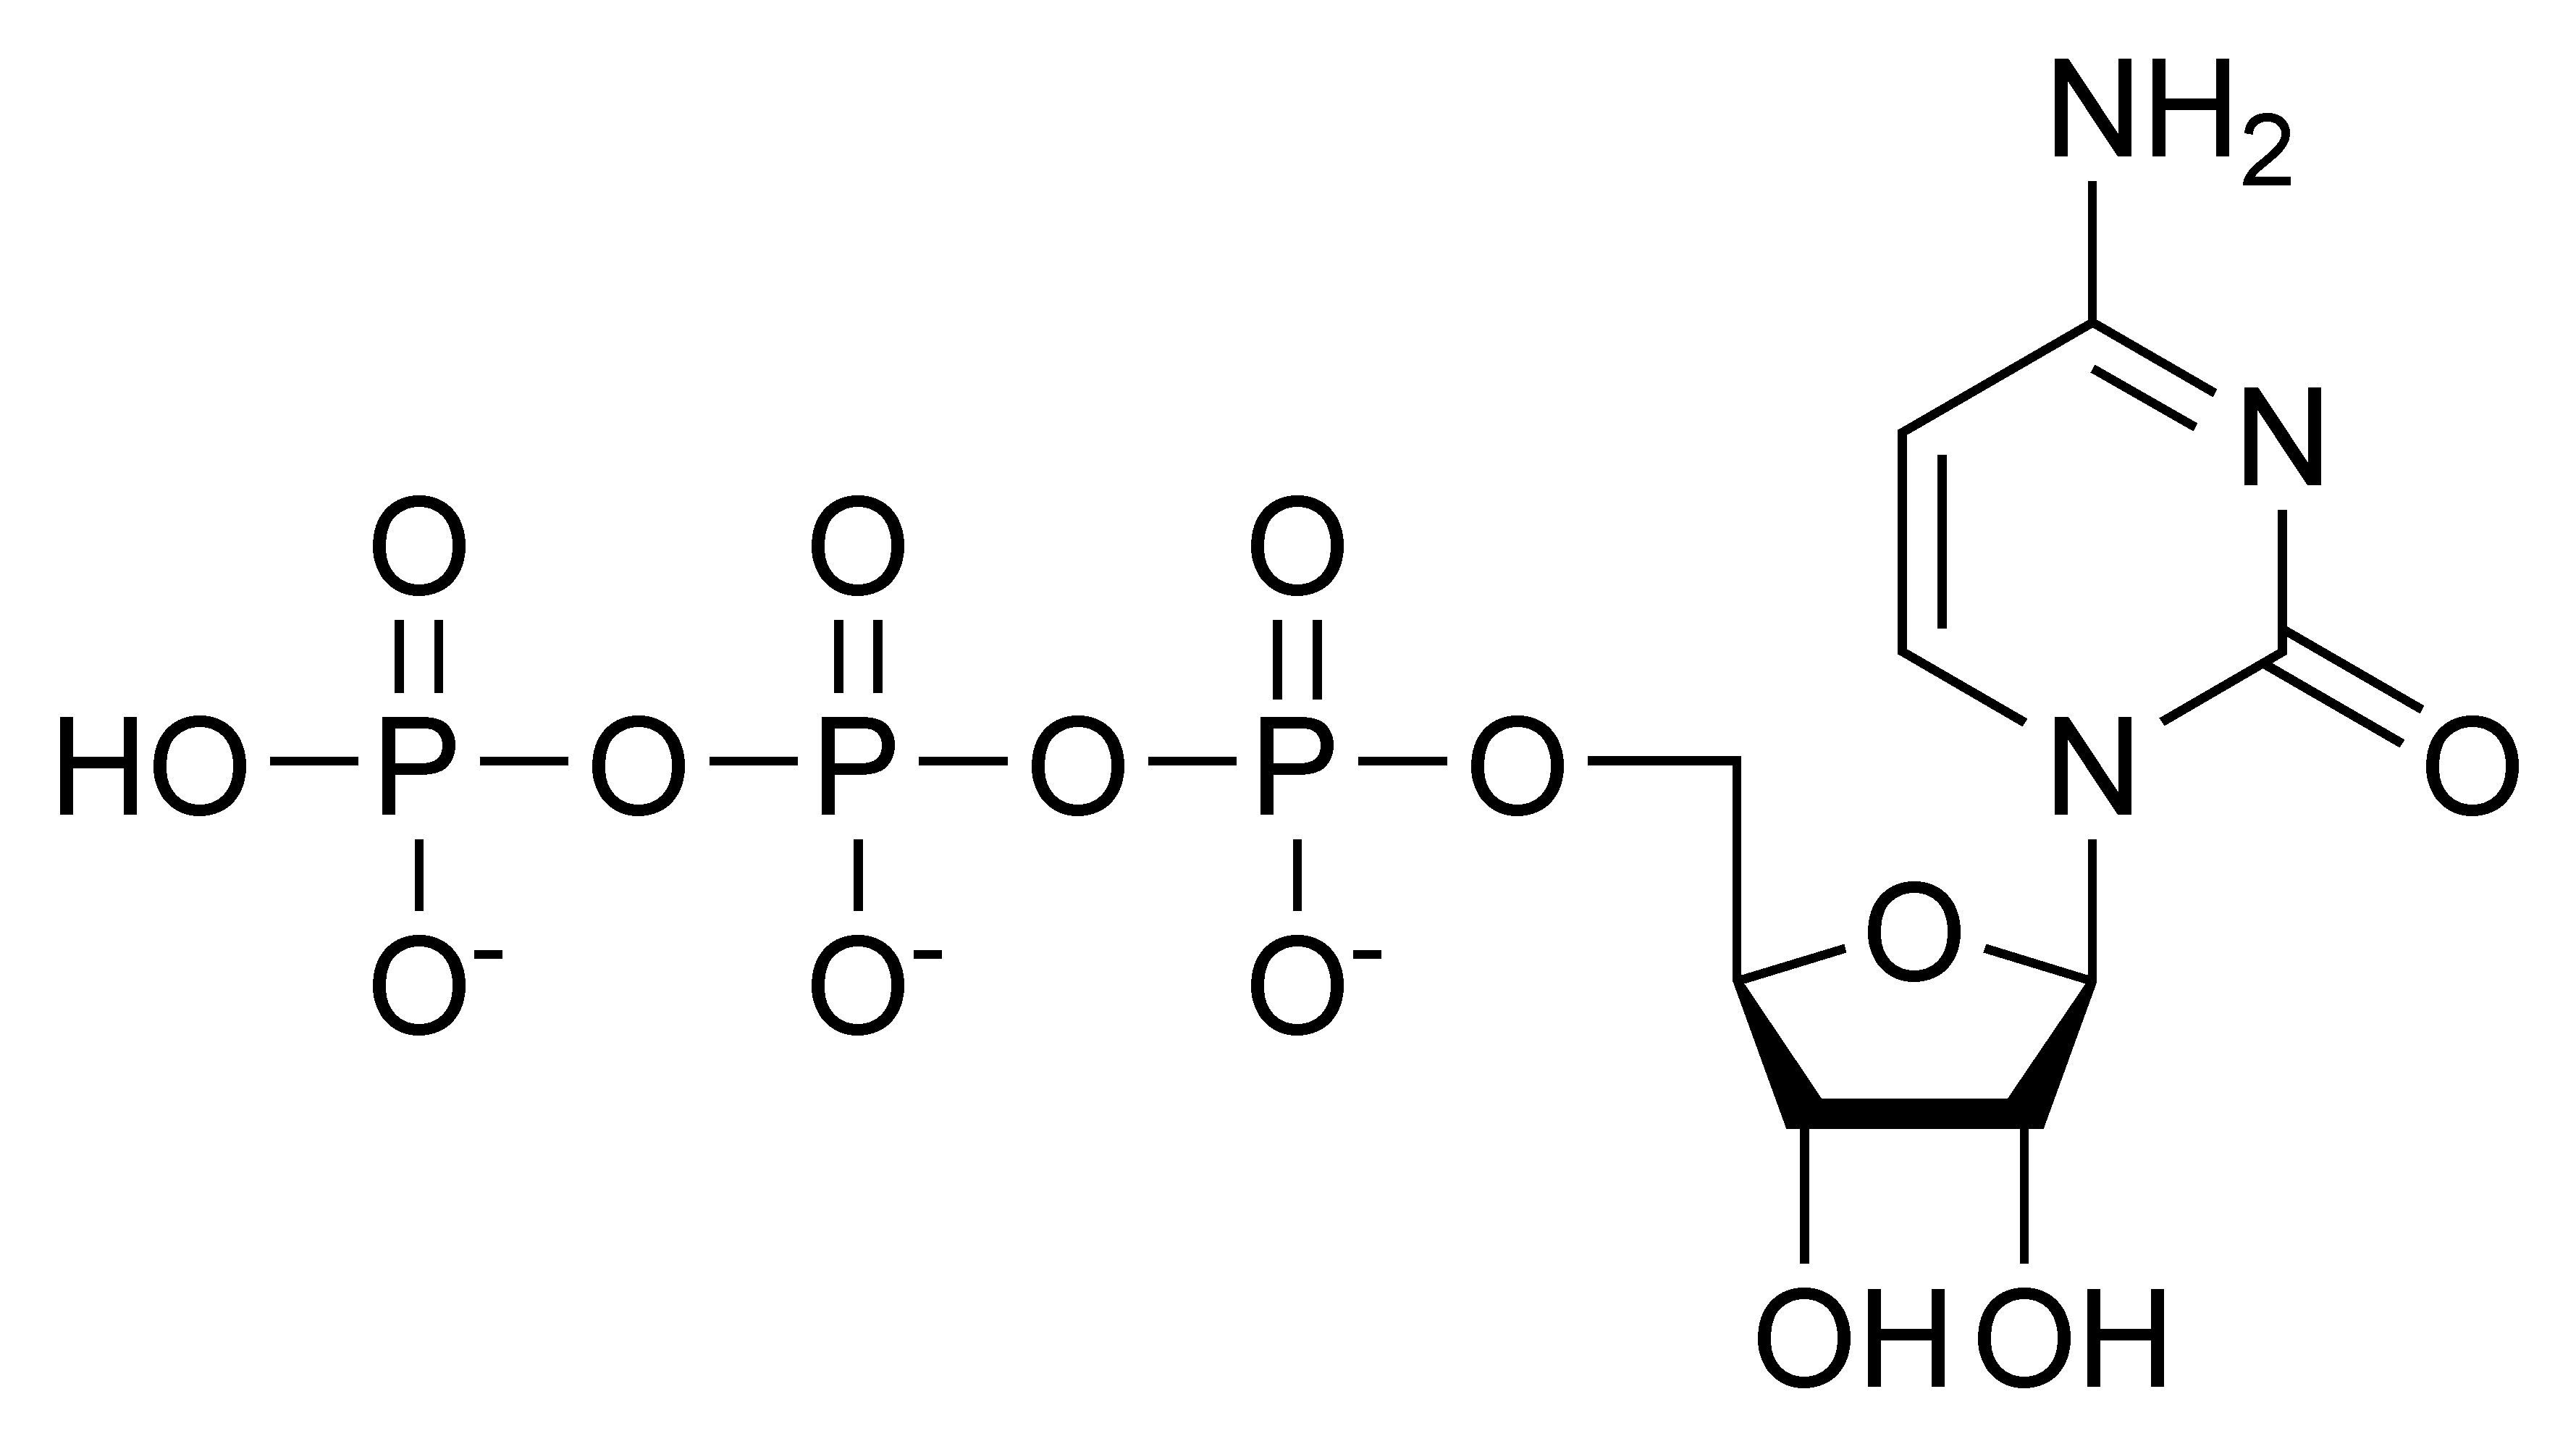 Chemical structure of cytidine triphosphate